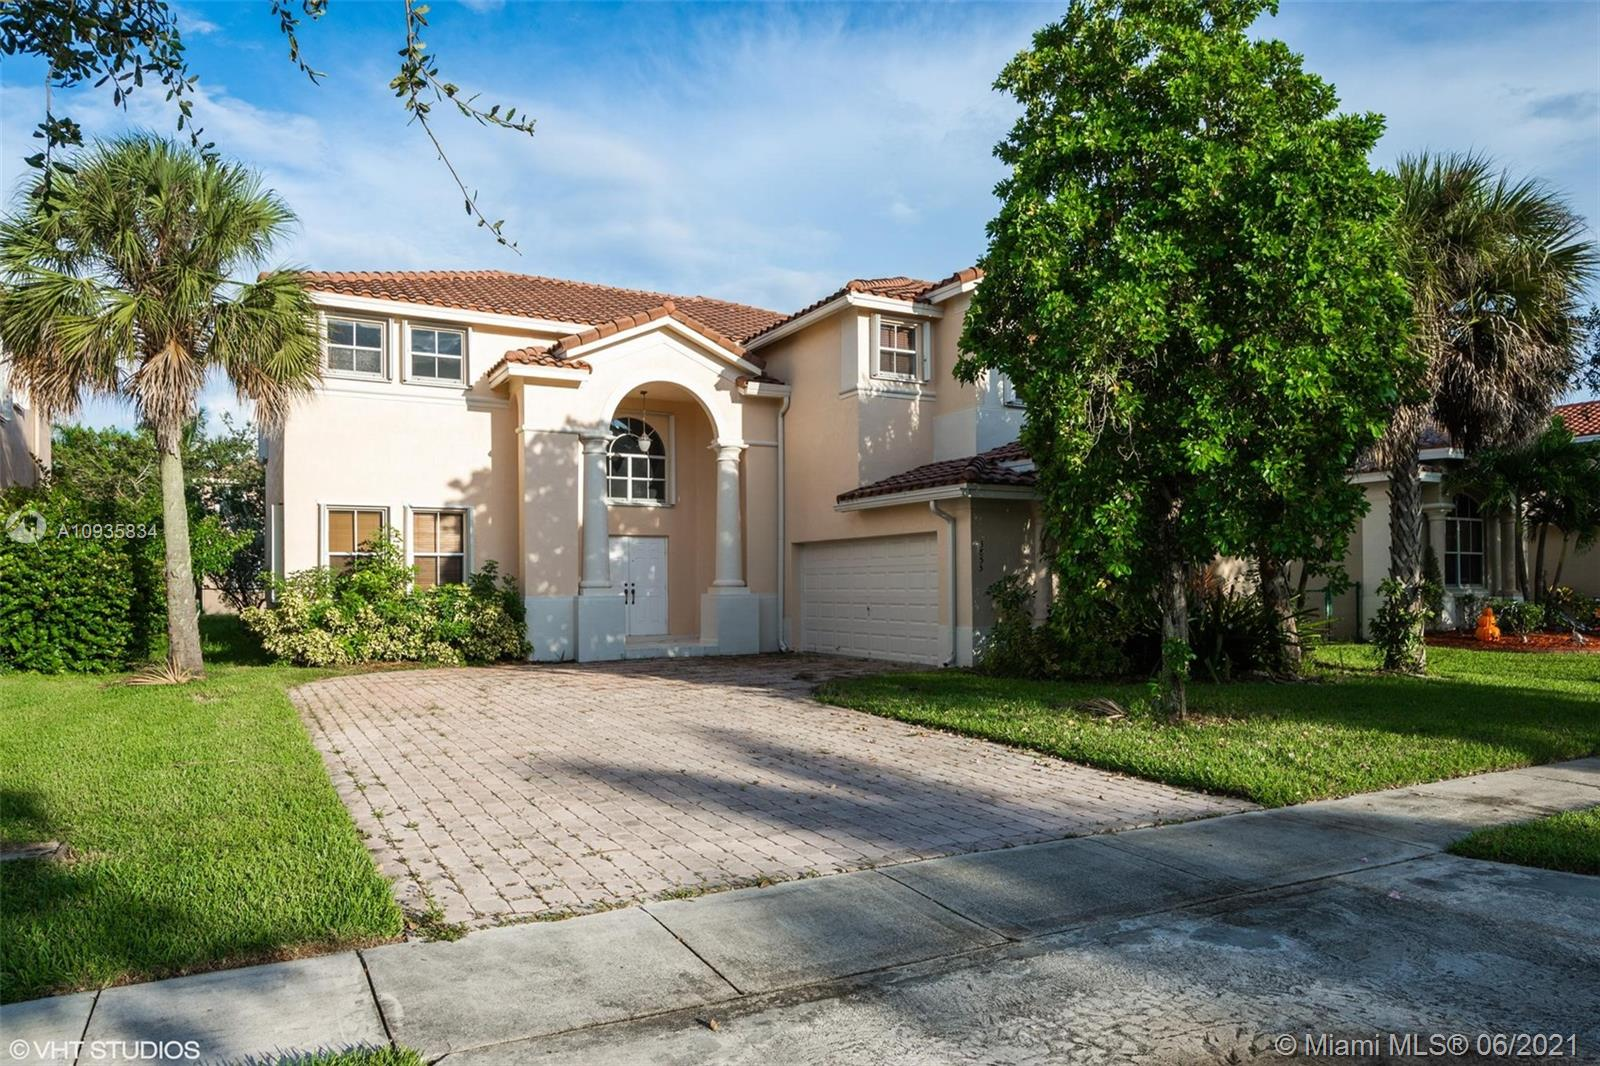 Details for 3855 168th Ter, Miramar, FL 33027